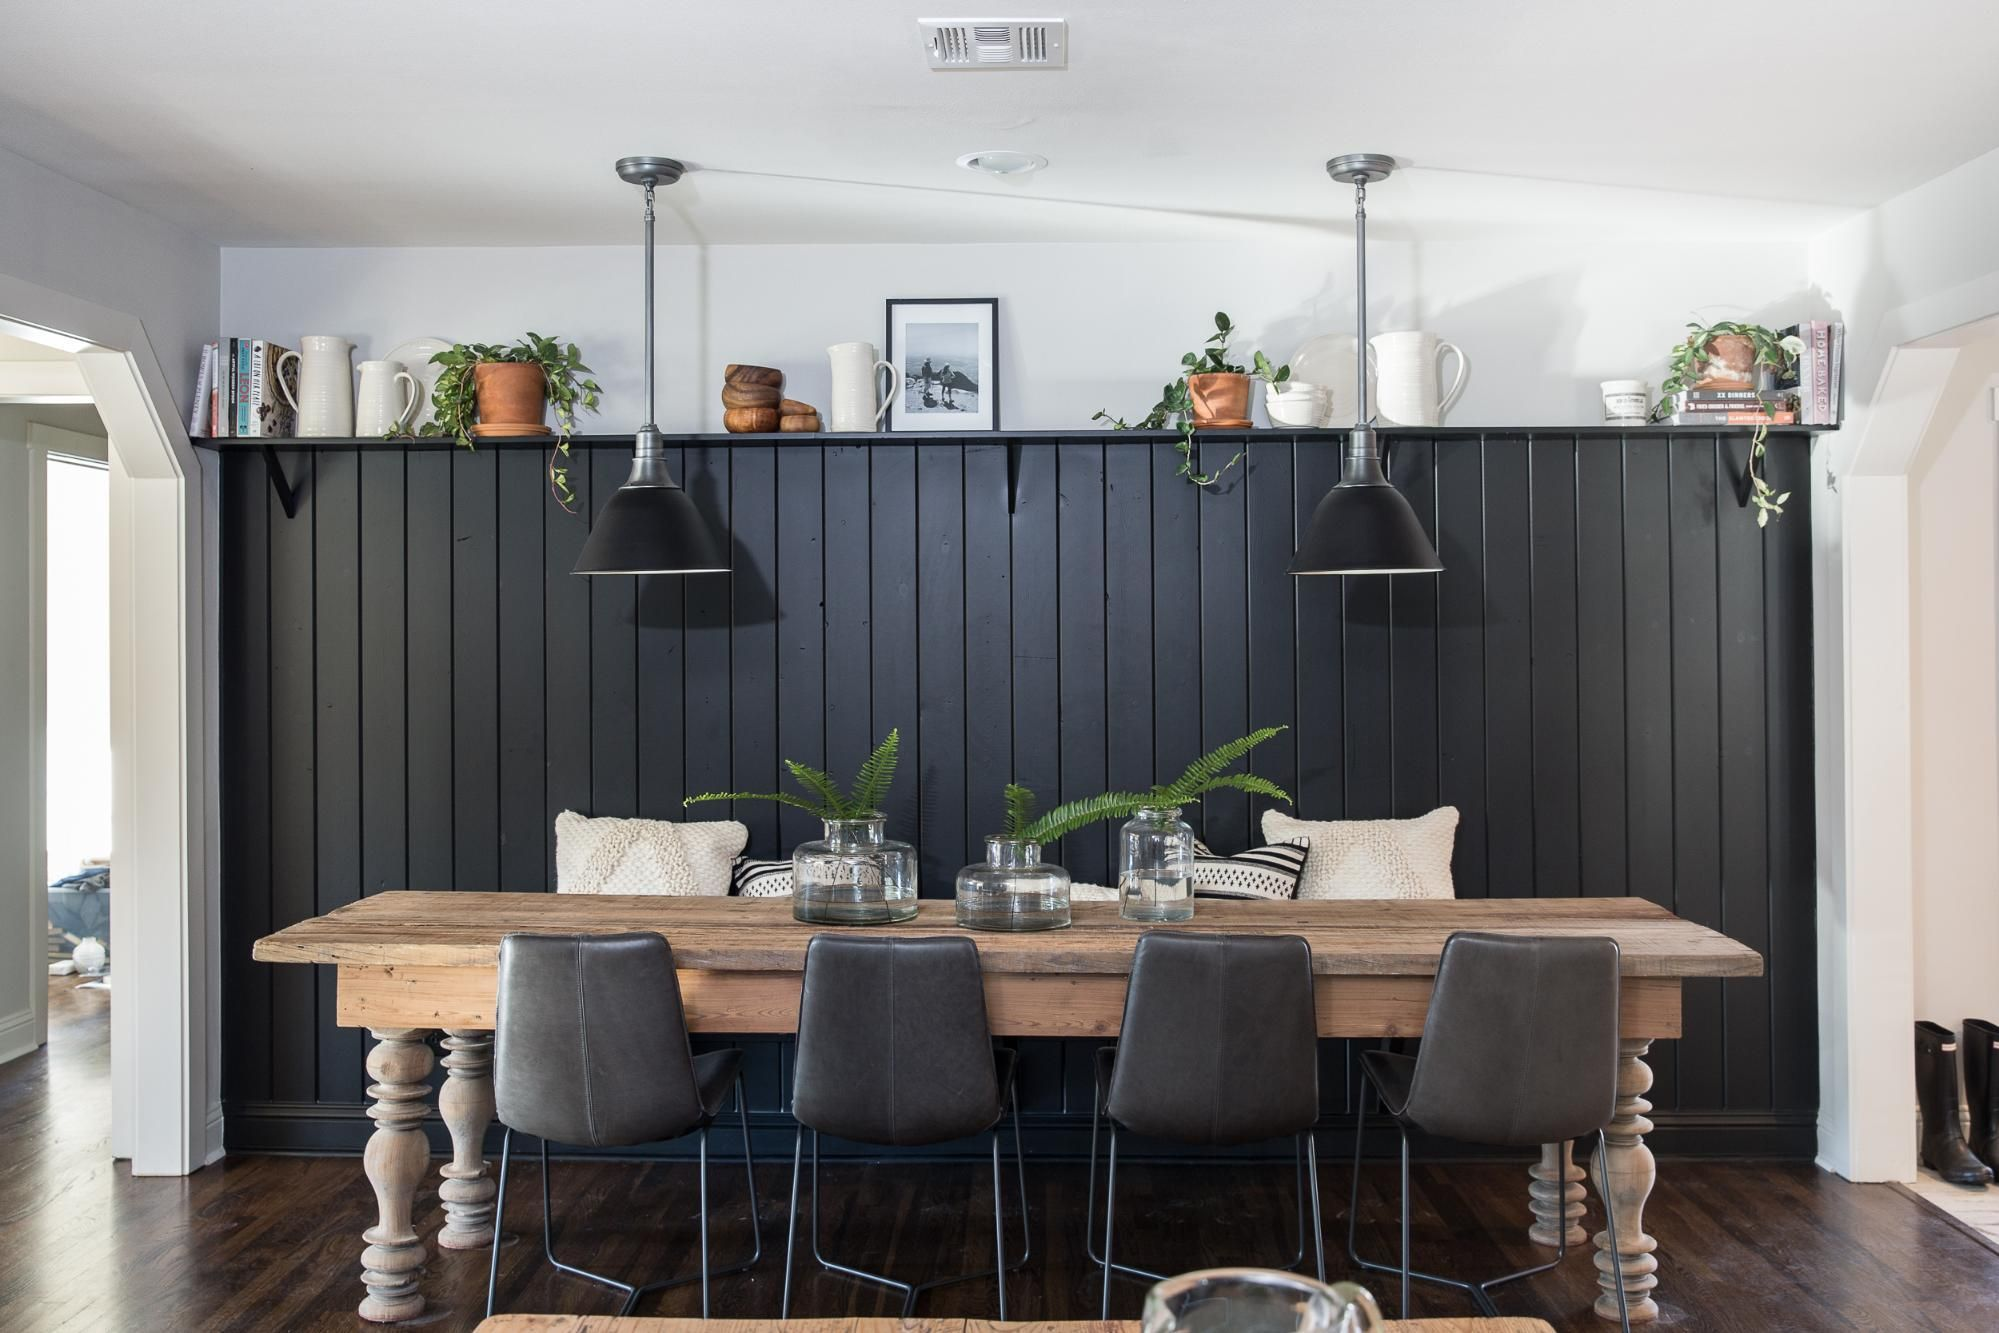 Fixer Upper Season 5 Episode 7 The Baker House Accent Wall Wainscoting Kitchen Dining Room Wainscoting Dining Nook